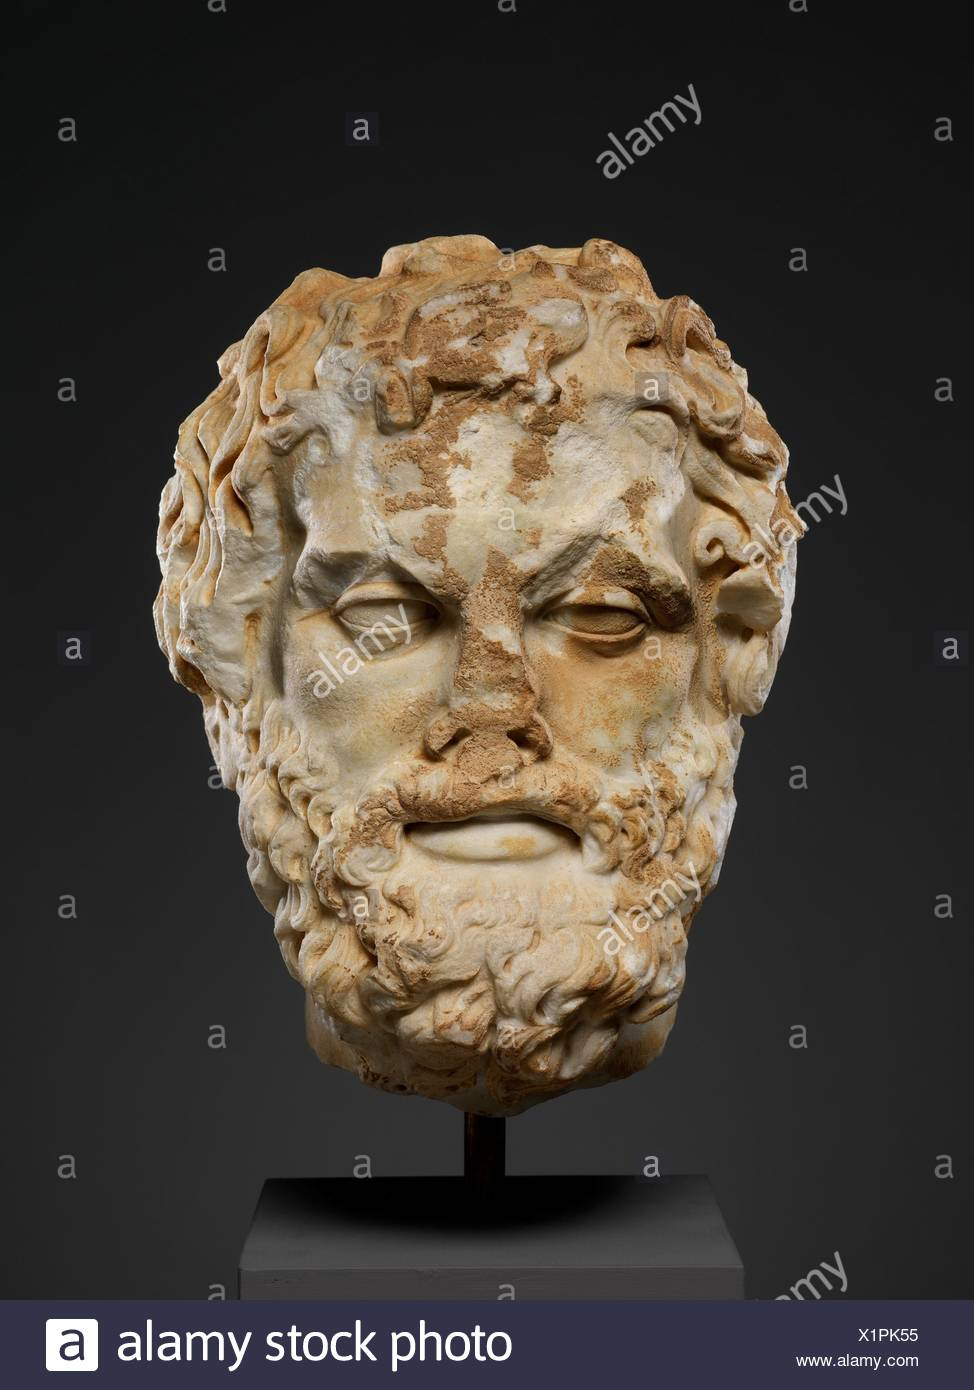 Marble head of a bearded man. Period: Imperial; Date: 2nd century A.D; Culture: Roman; Medium: Marble; Dimensions: H. 12 3/16 in. (31 cm); - Stock Image